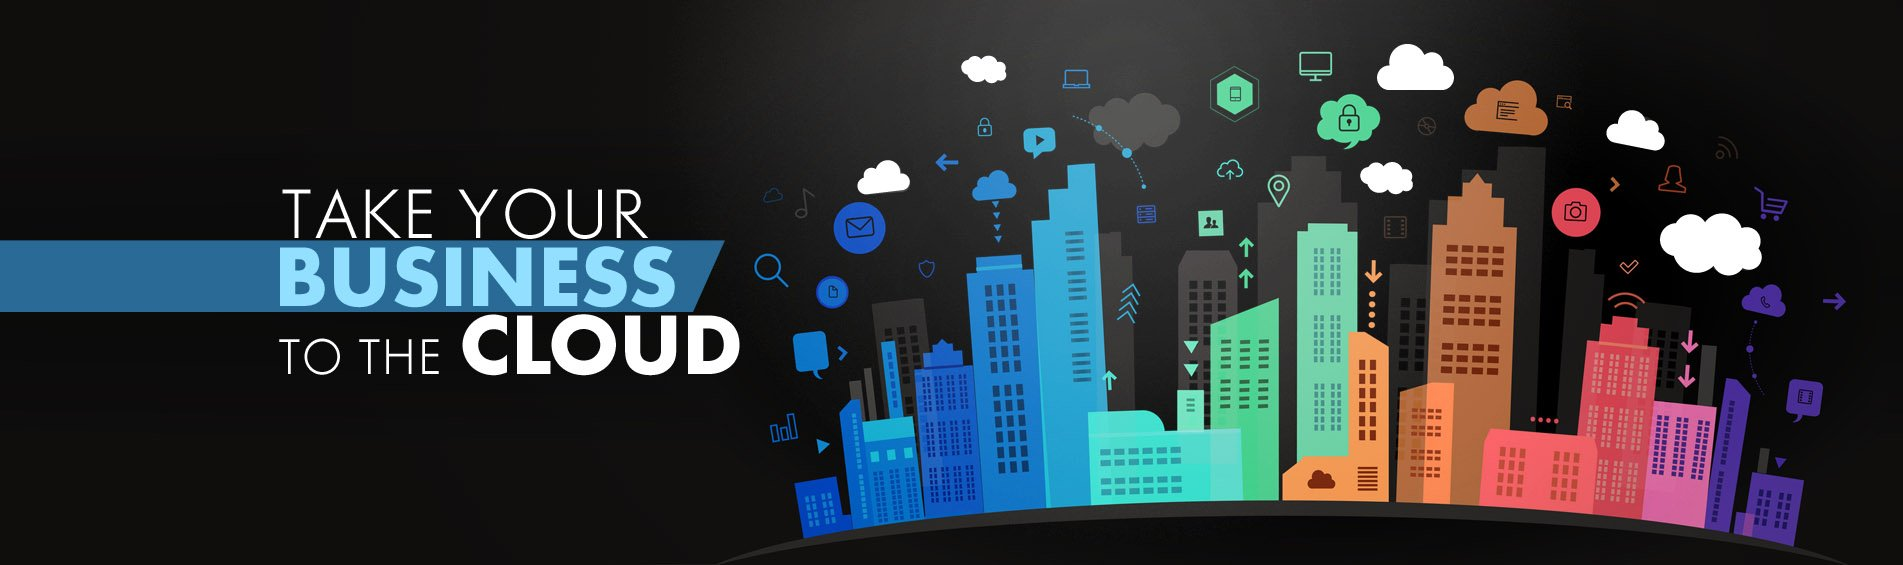 Take your business to the cloud